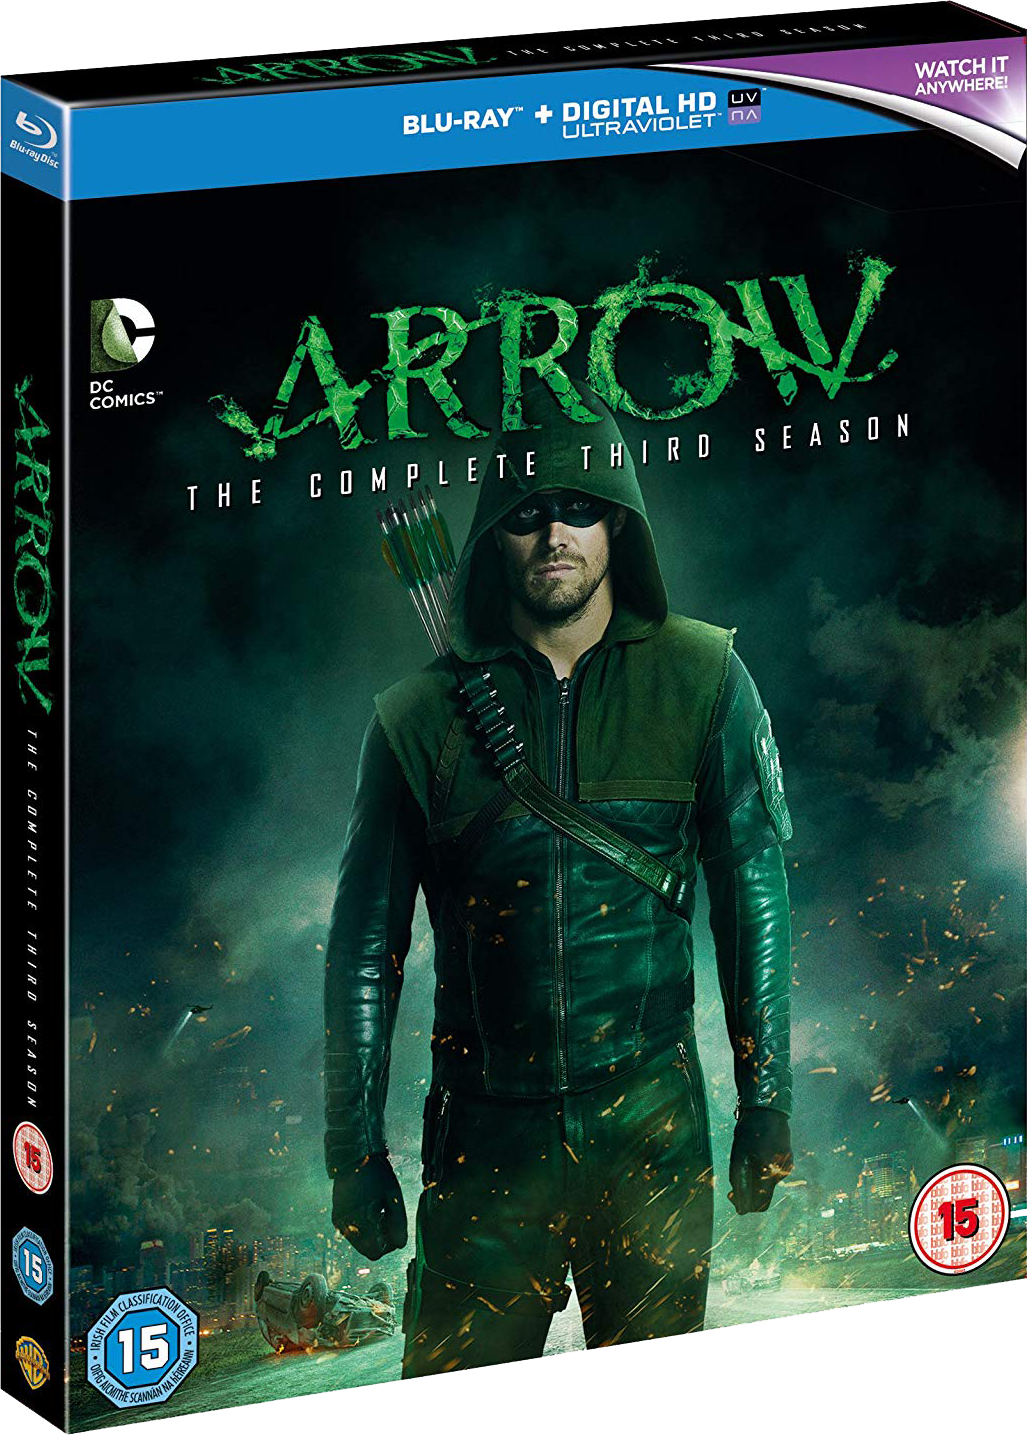 Arrow - The Complete Third Season region B cover.png